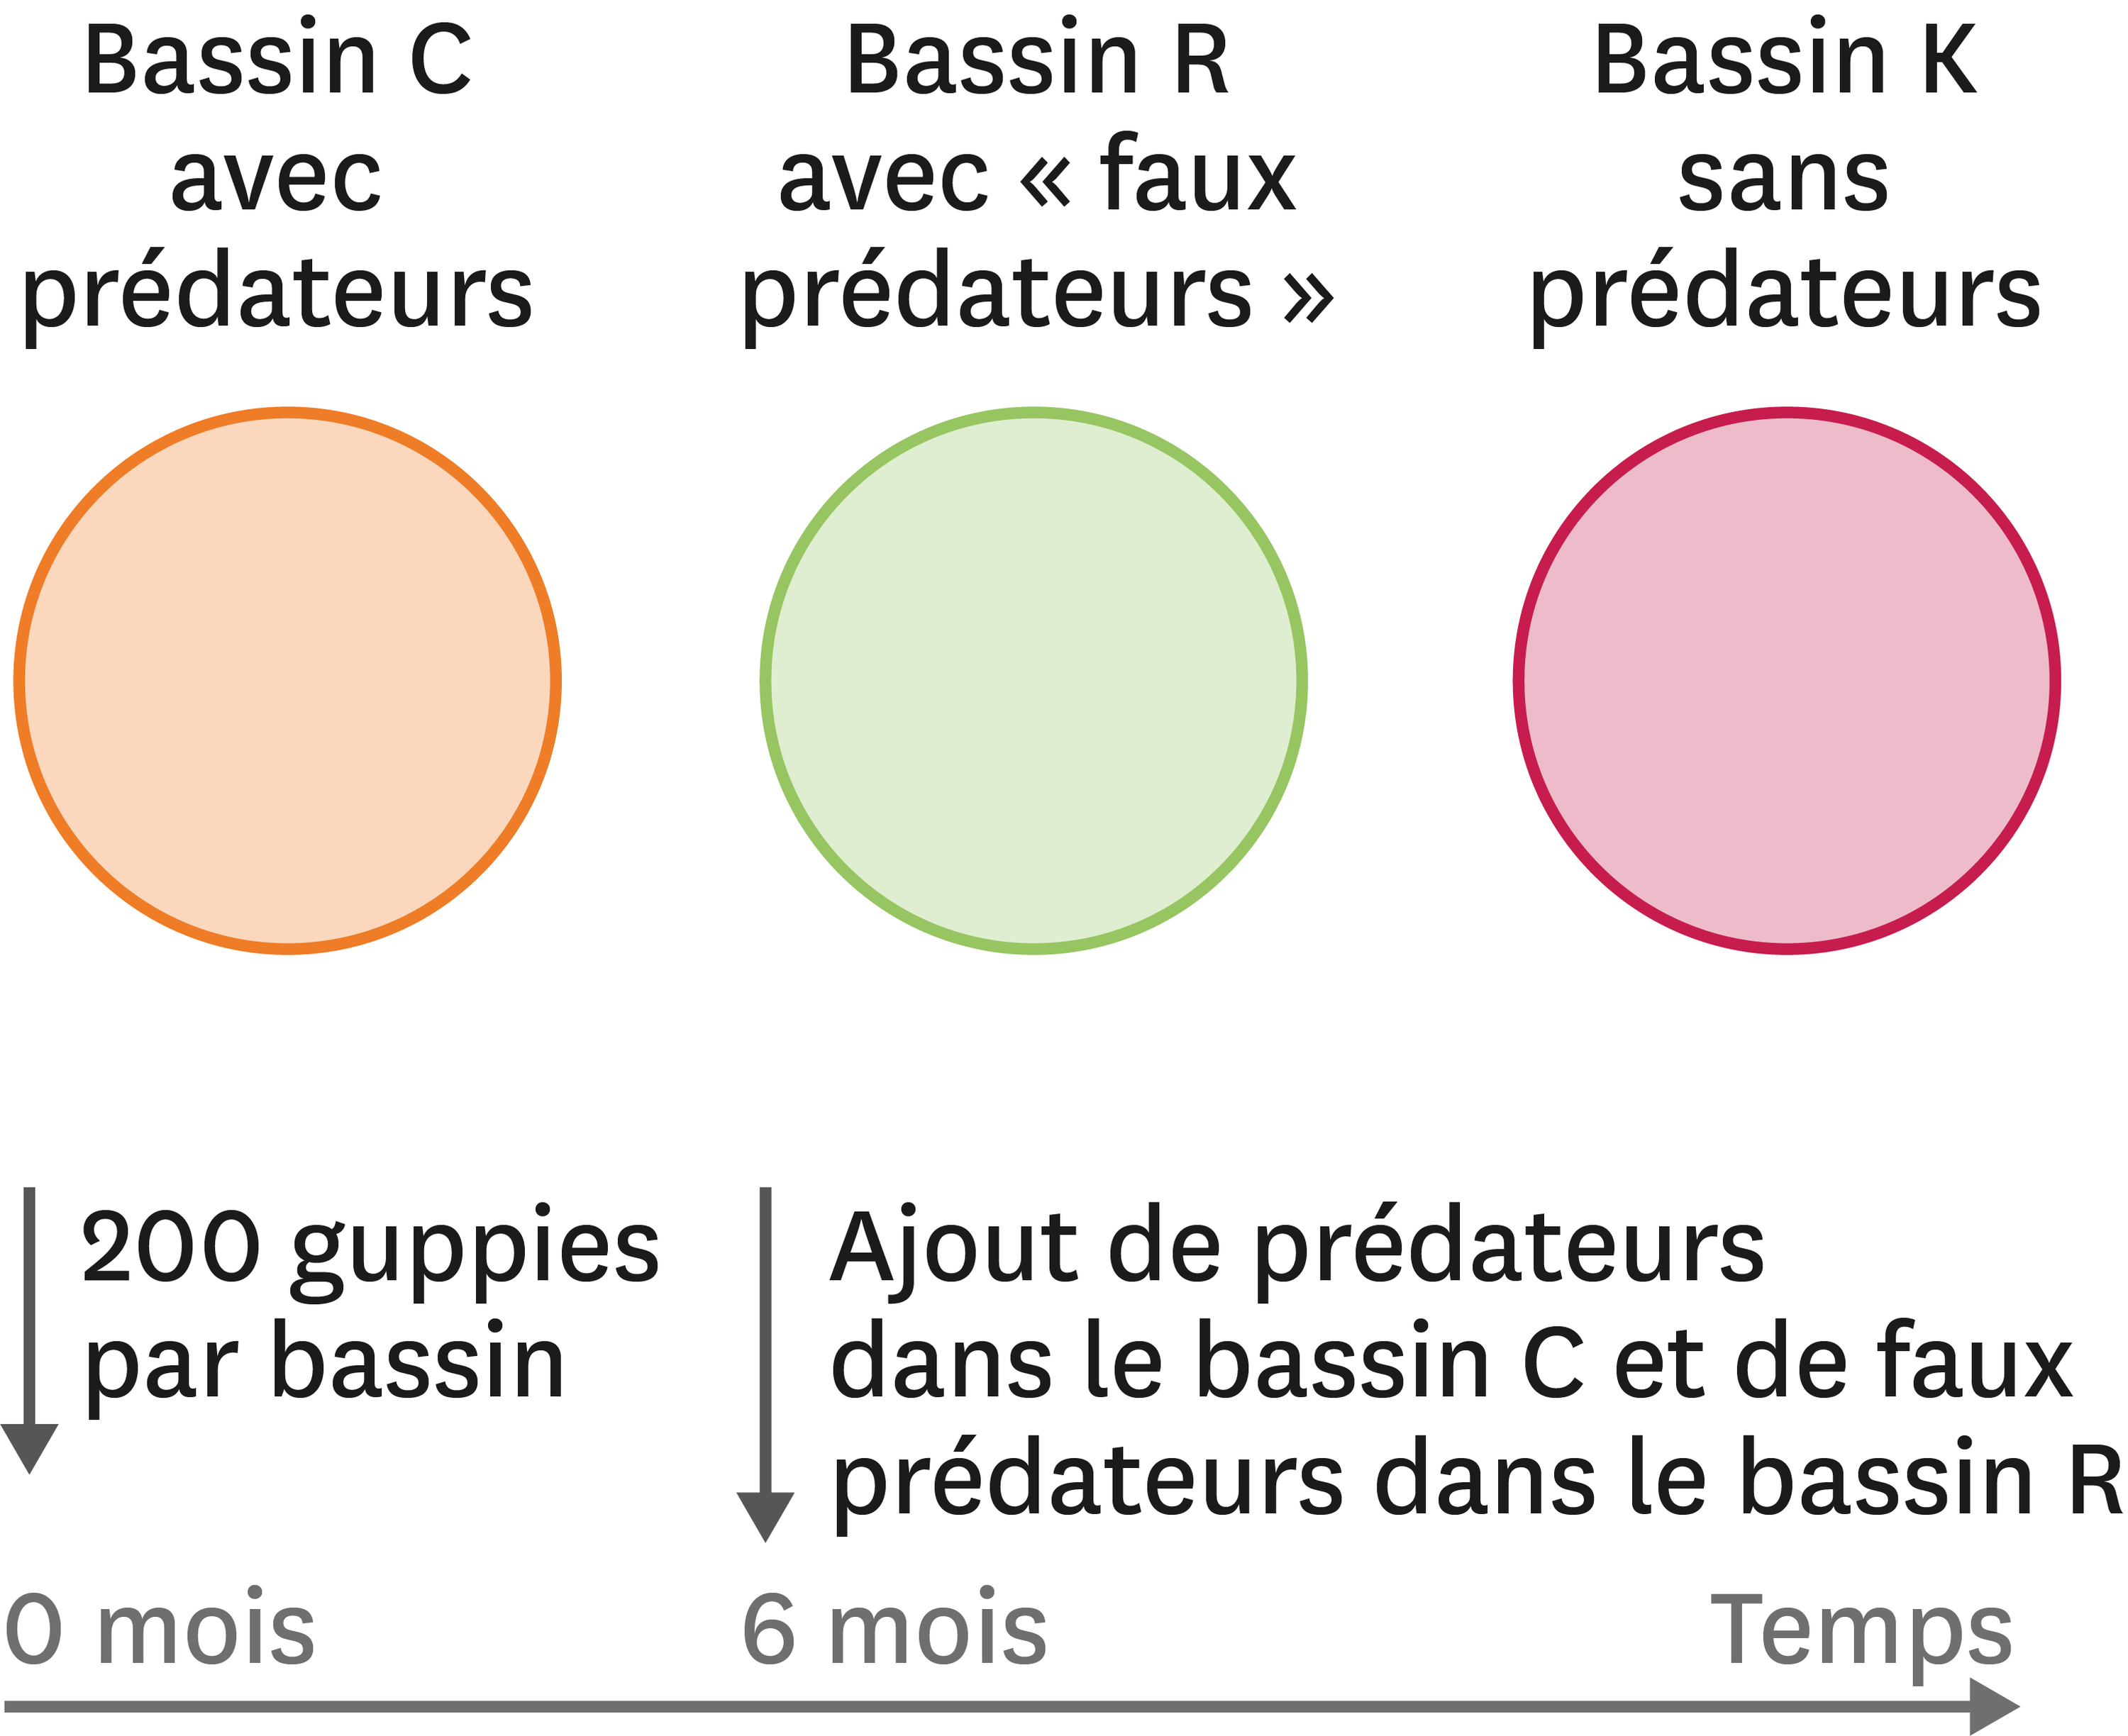 <stamp theme='svt-green1'>Doc. 2</stamp> Une expérience avec des bassins artificiels pour tester l'effet de la prédation sur les couleurs des guppies mâles.